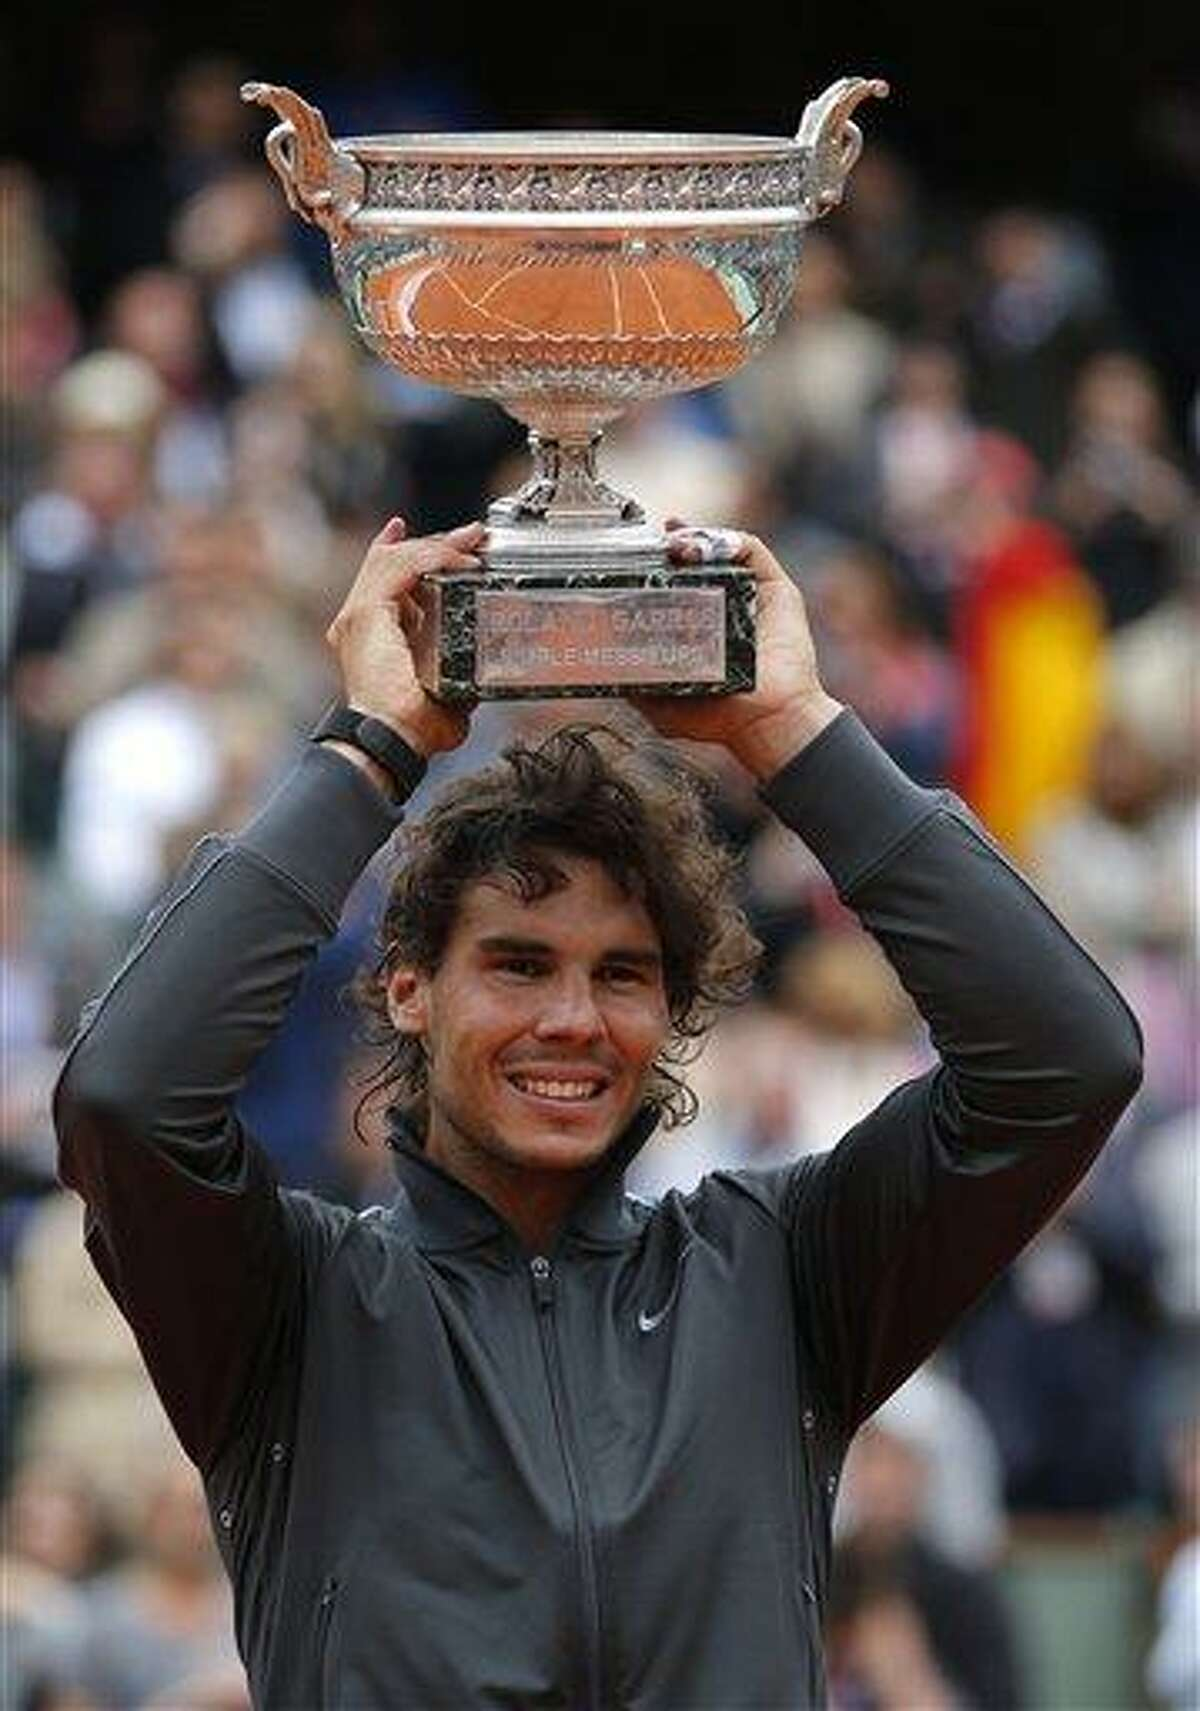 Spain's Rafael Nadal holds the cup after defeating Serbia's Novak Djokovic after their men's final match in the French Open tennis tournament at the Roland Garros stadium Monday in Paris. Nadal passes Bjorn Borg as the all-time record-holder for French Open titles. Associated Press